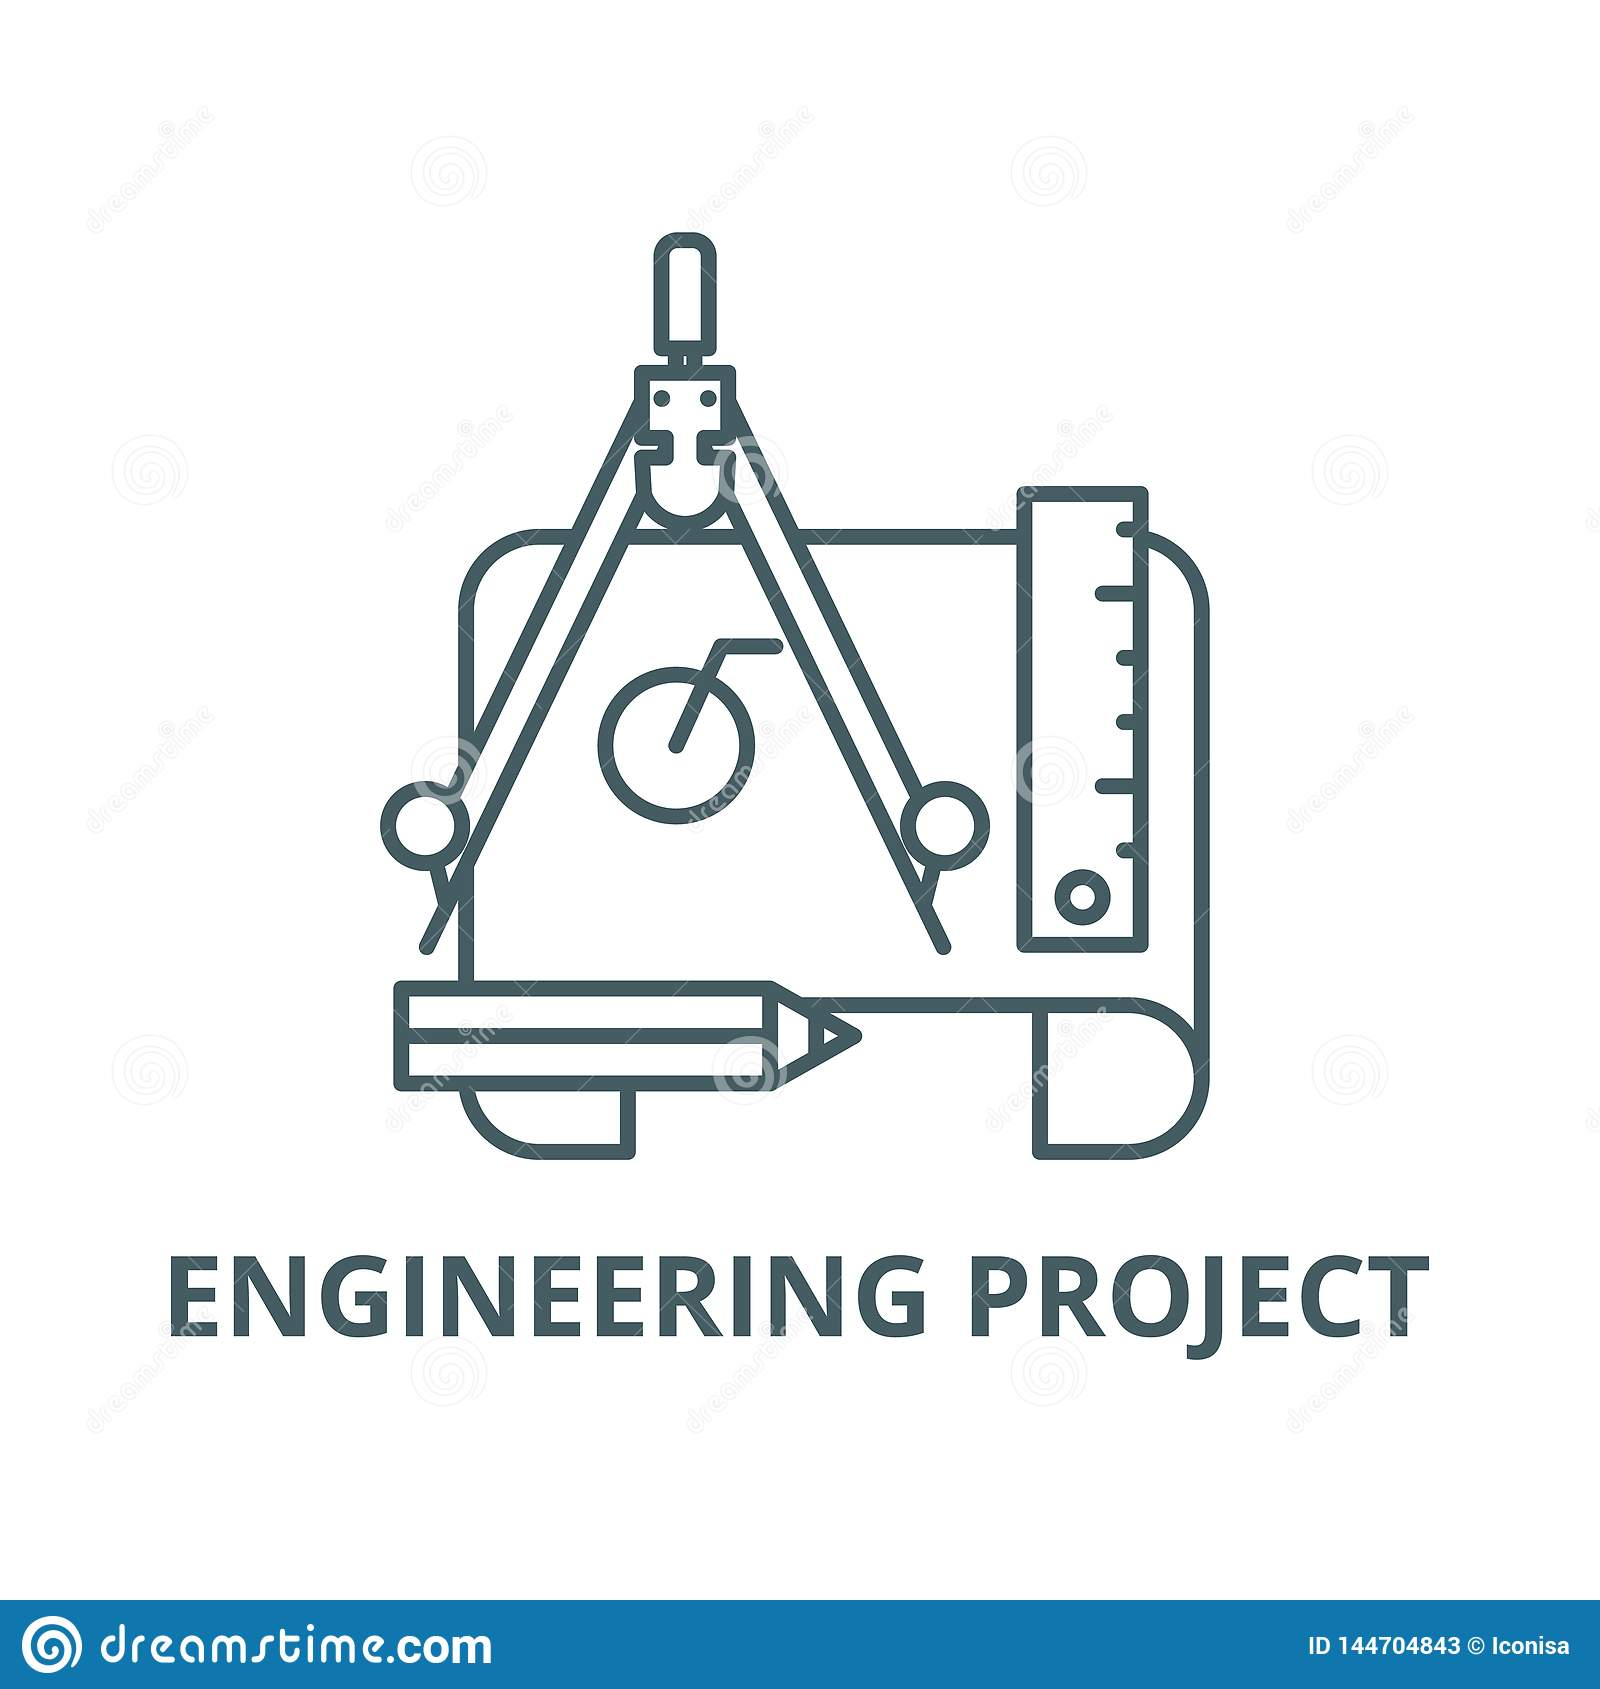 Engineering project line icon, vector. Engineering project outline sign, concept symbol, flat illustration